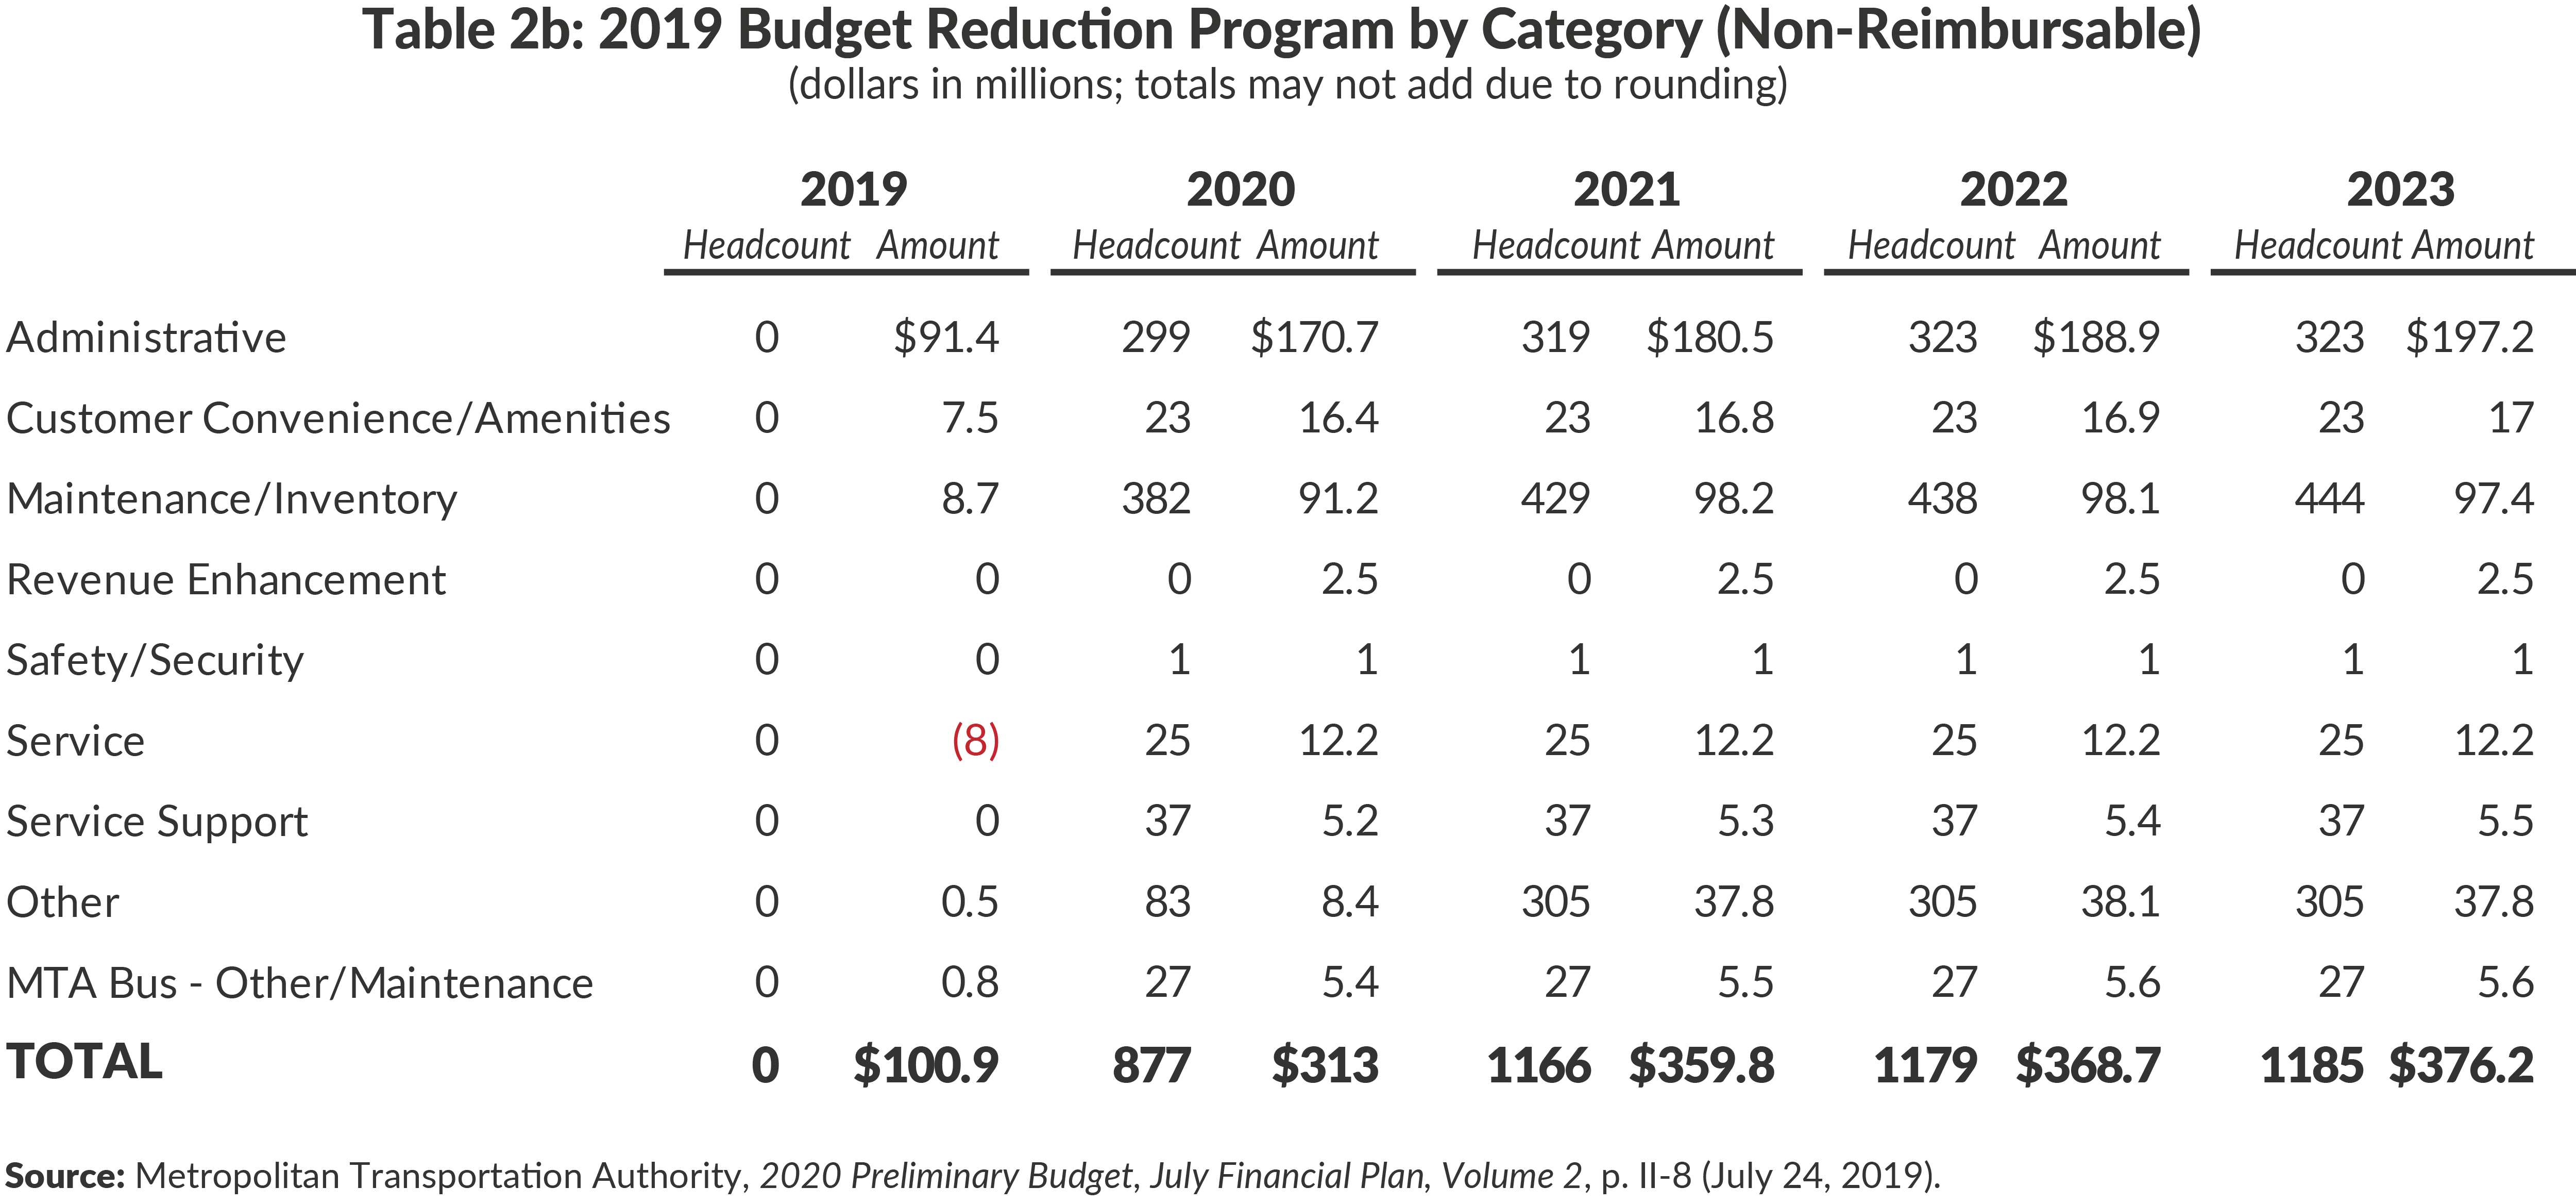 Table 2b: 2019 Budget Reduction Program by Category (Non-Reimbursable)